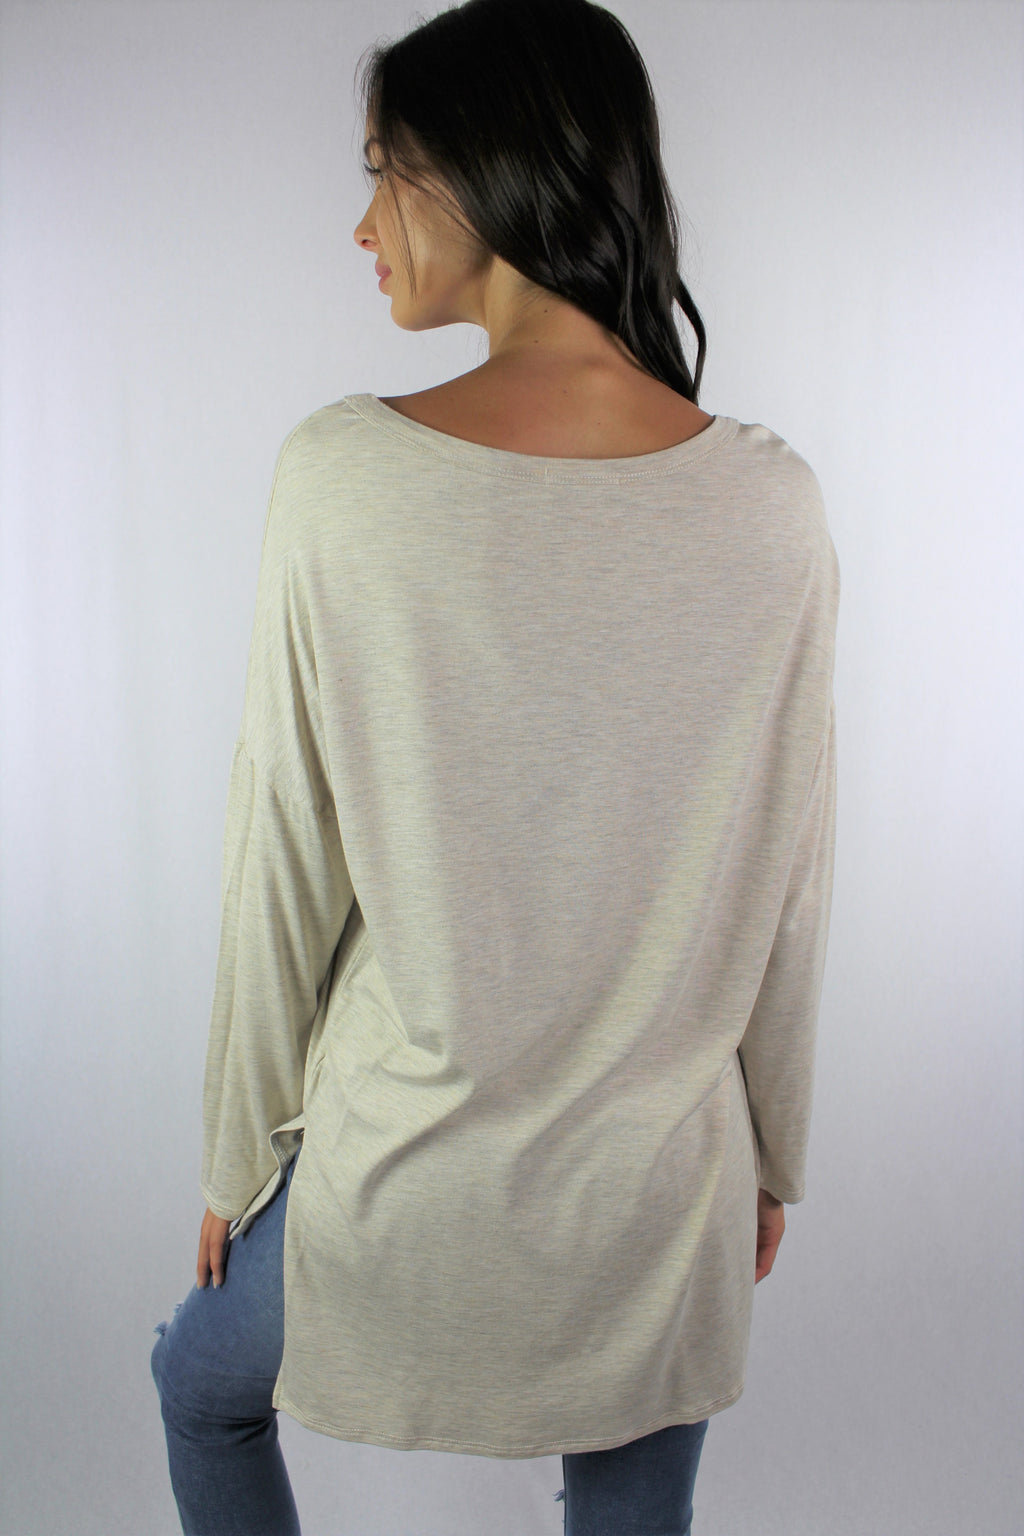 Women's Long Sleeve Uneven Hem Round Neck Top